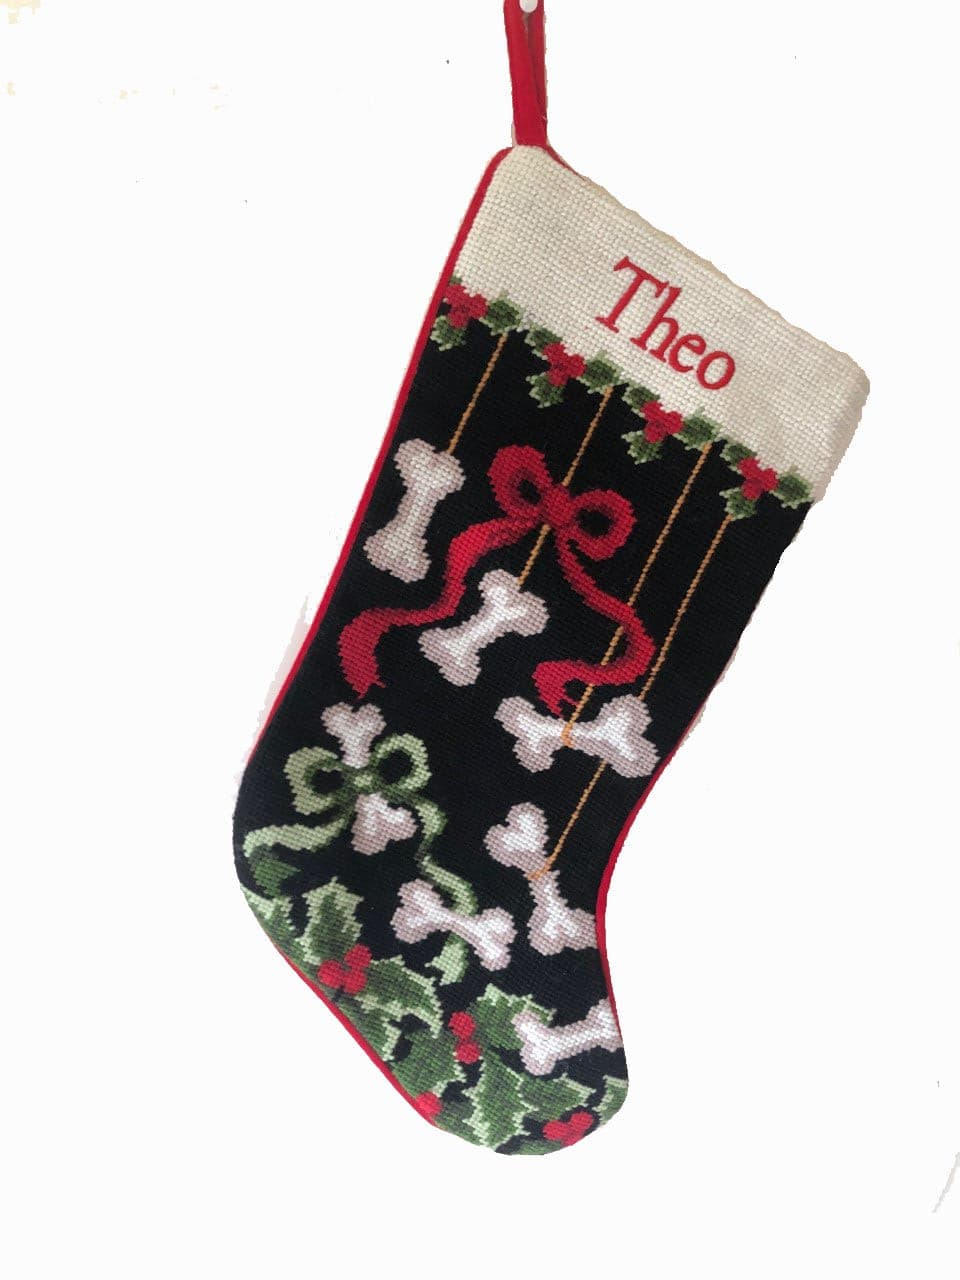 Needlepoint dog bone stocking with Block Font Name